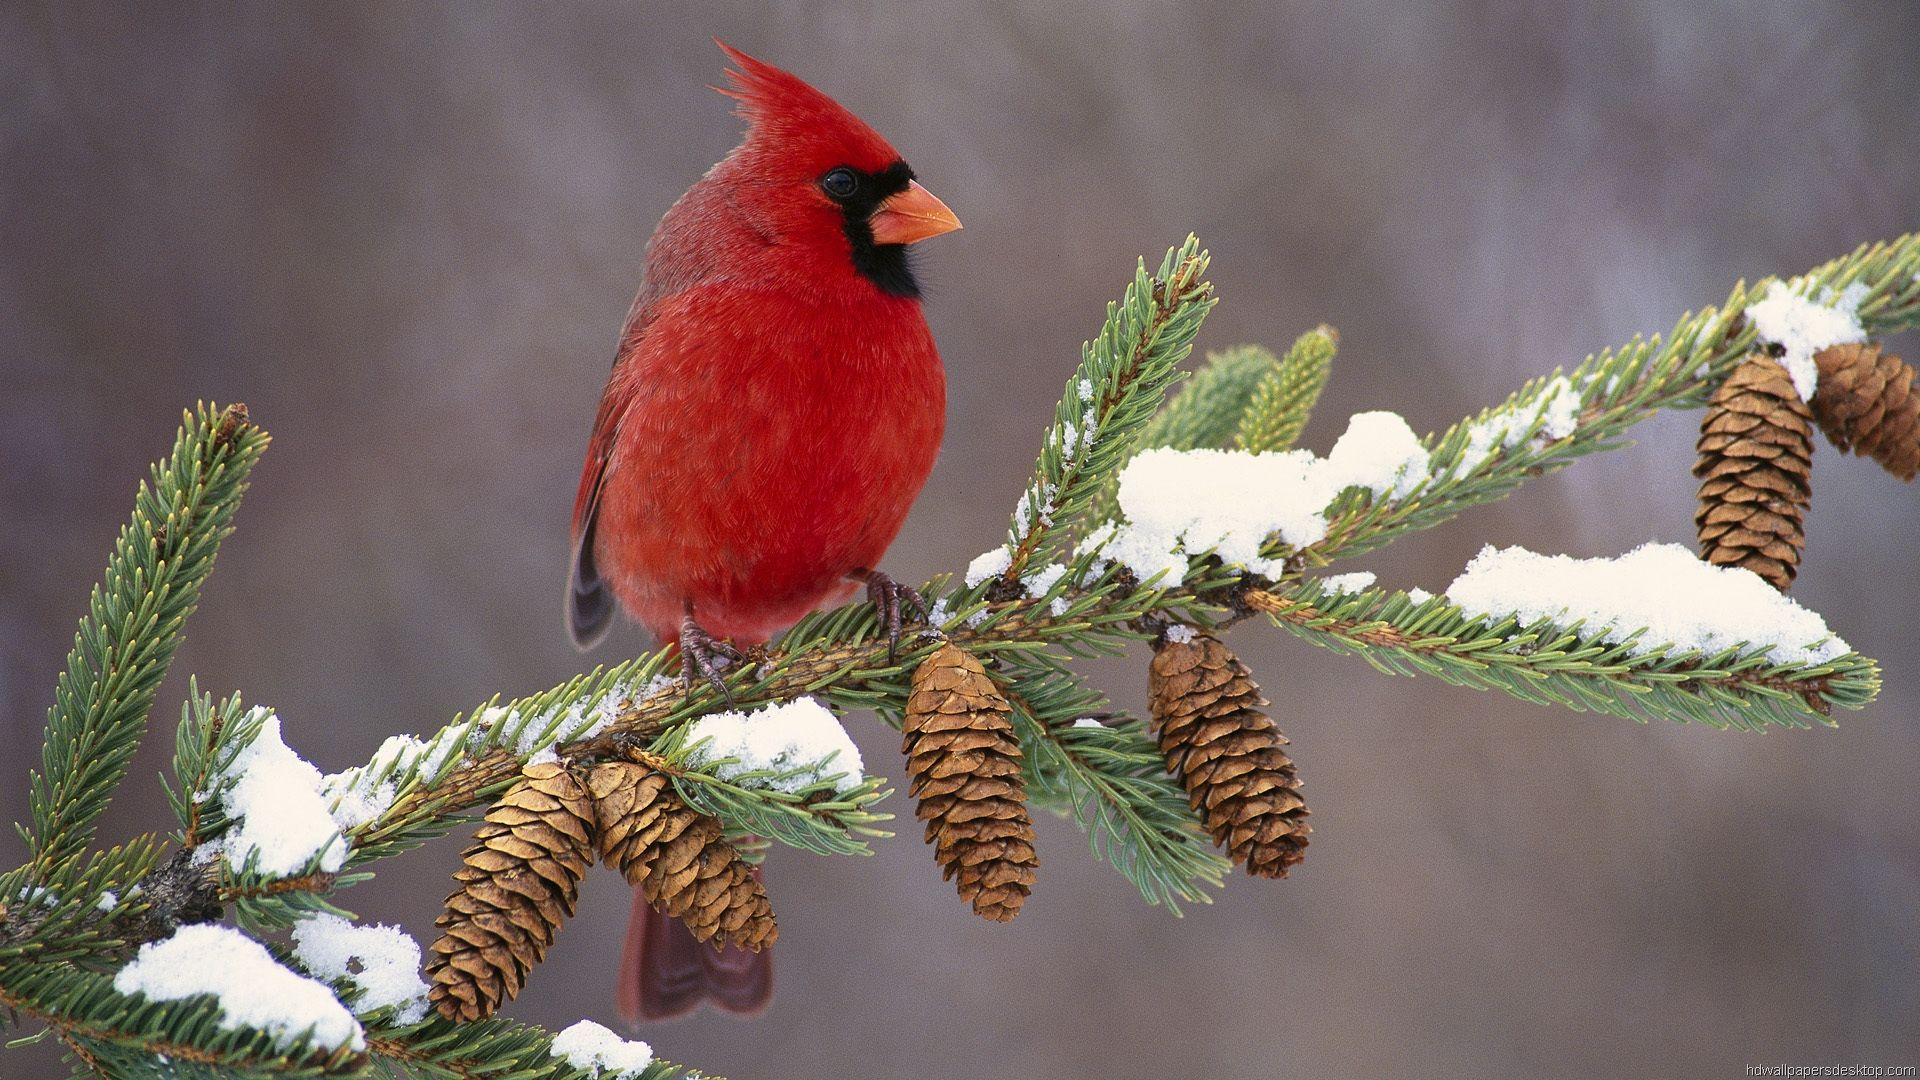 Winter Birds Wallpaper Hd Wallpapers 1080p Hd Widescreen Wallpaper 1920x1080 Cardinal Birds Beautiful Birds Birds